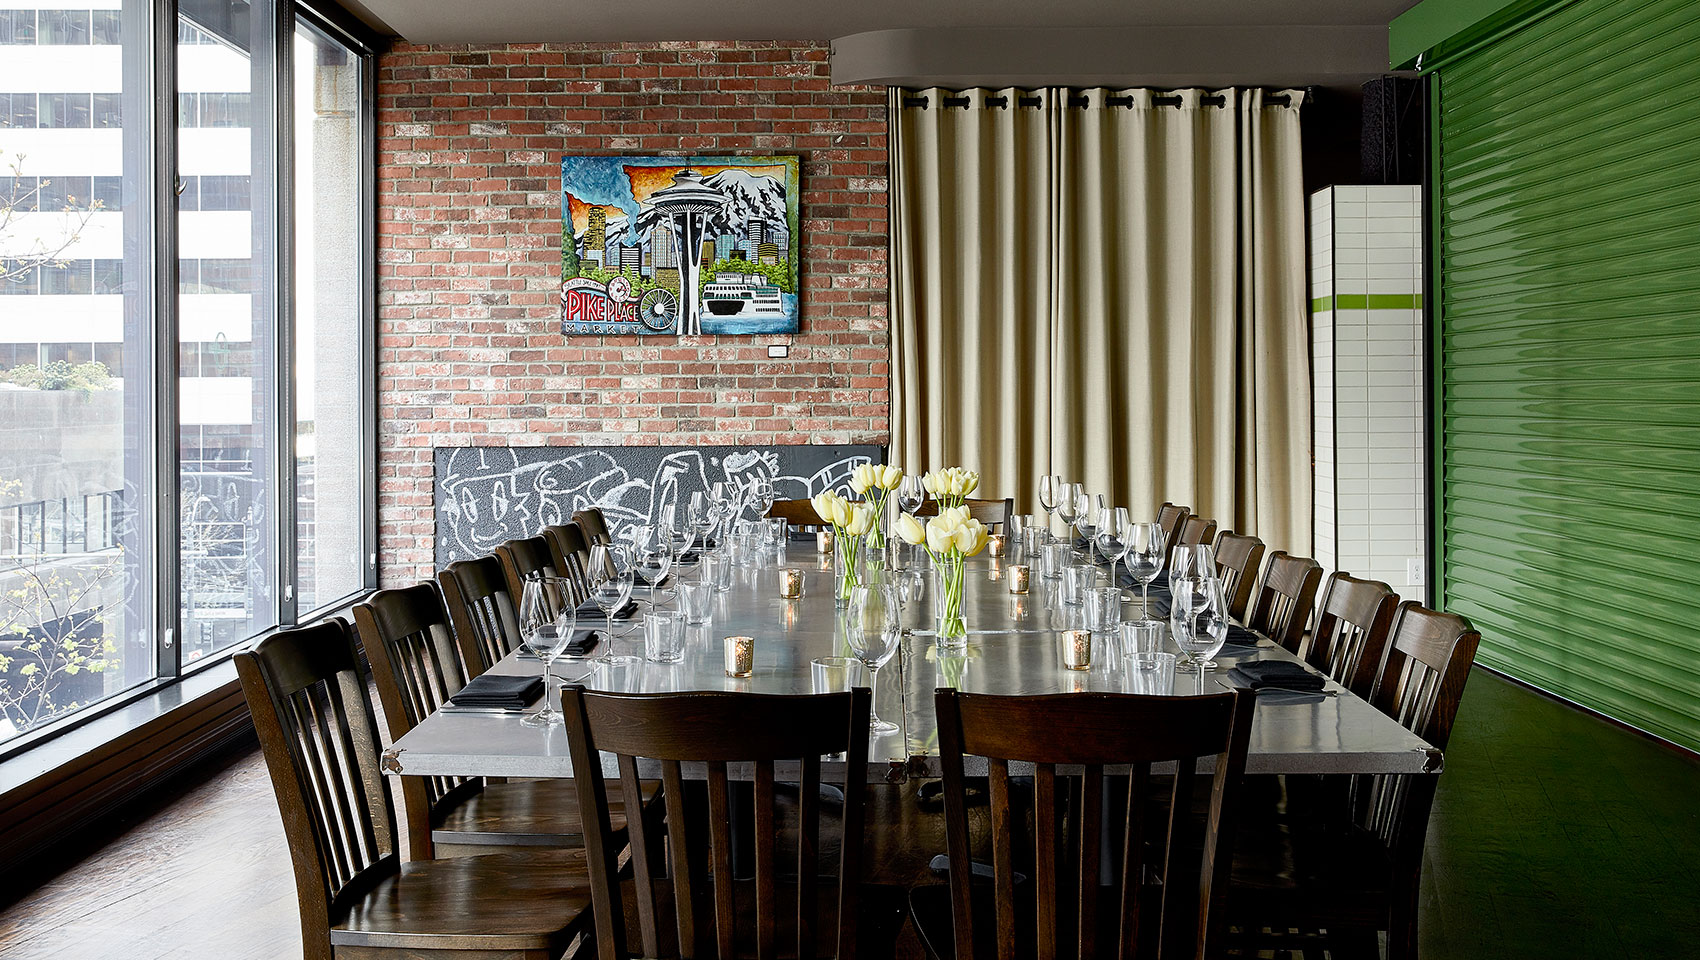 Garage style private dining space overlooking downtown Seattle